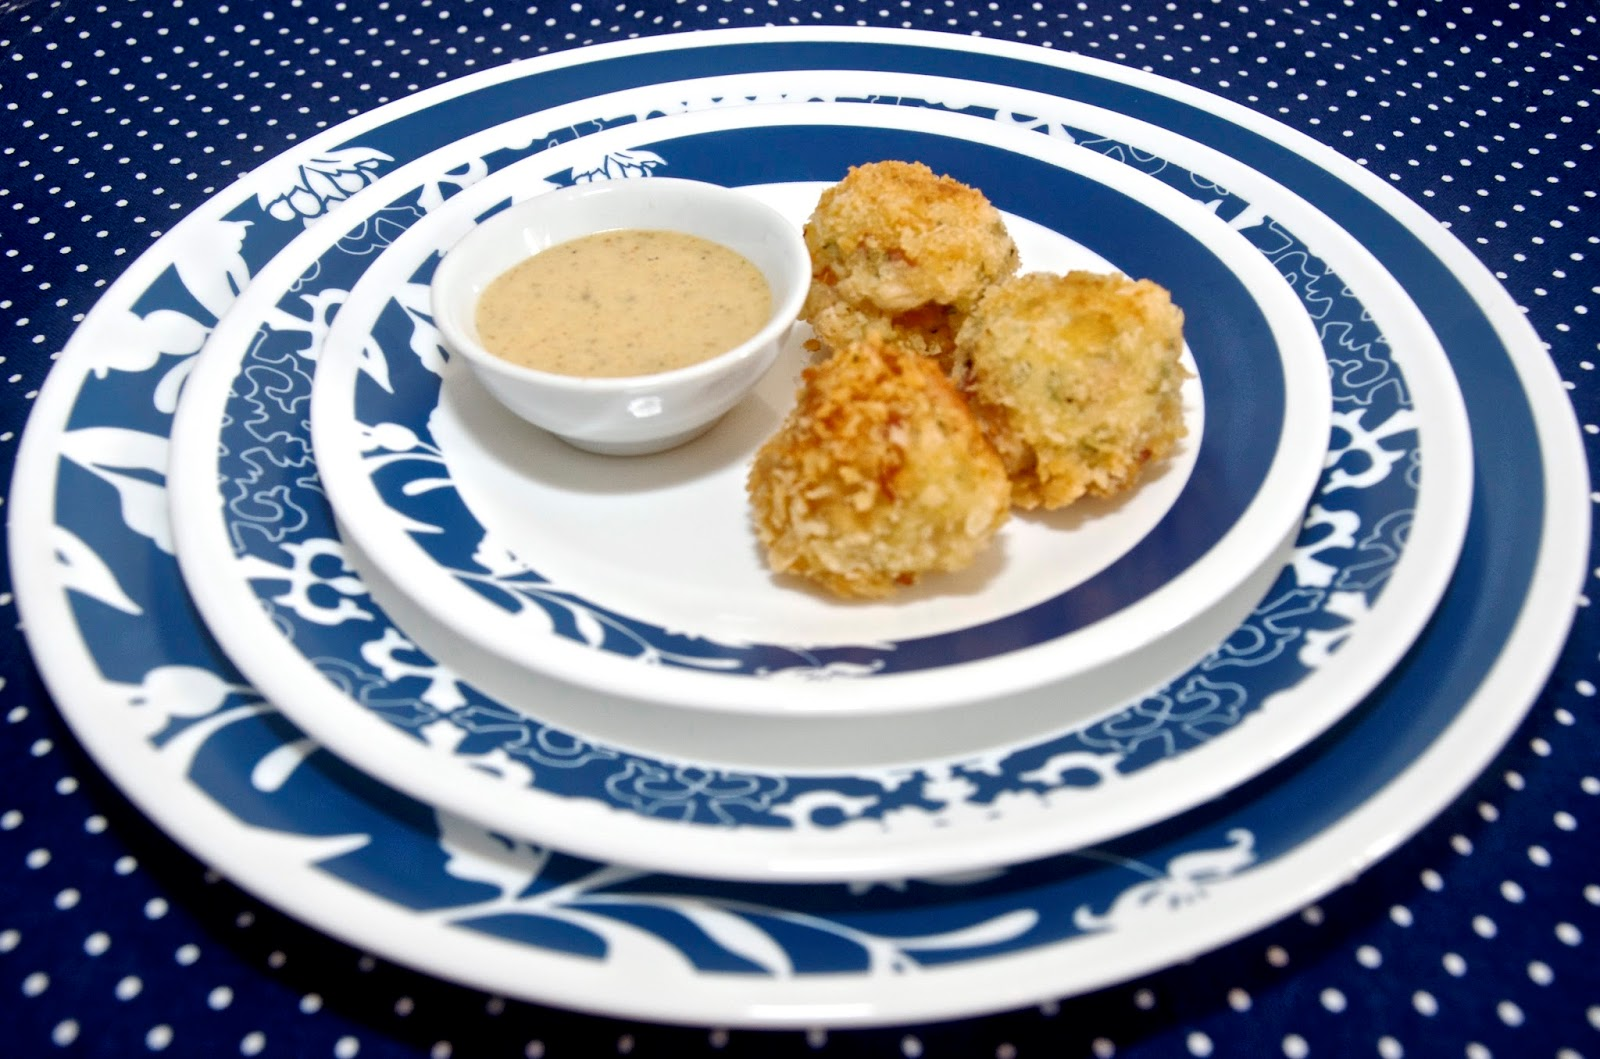 Chicken and ham croquettes with spicy honey mustard dipping sauce